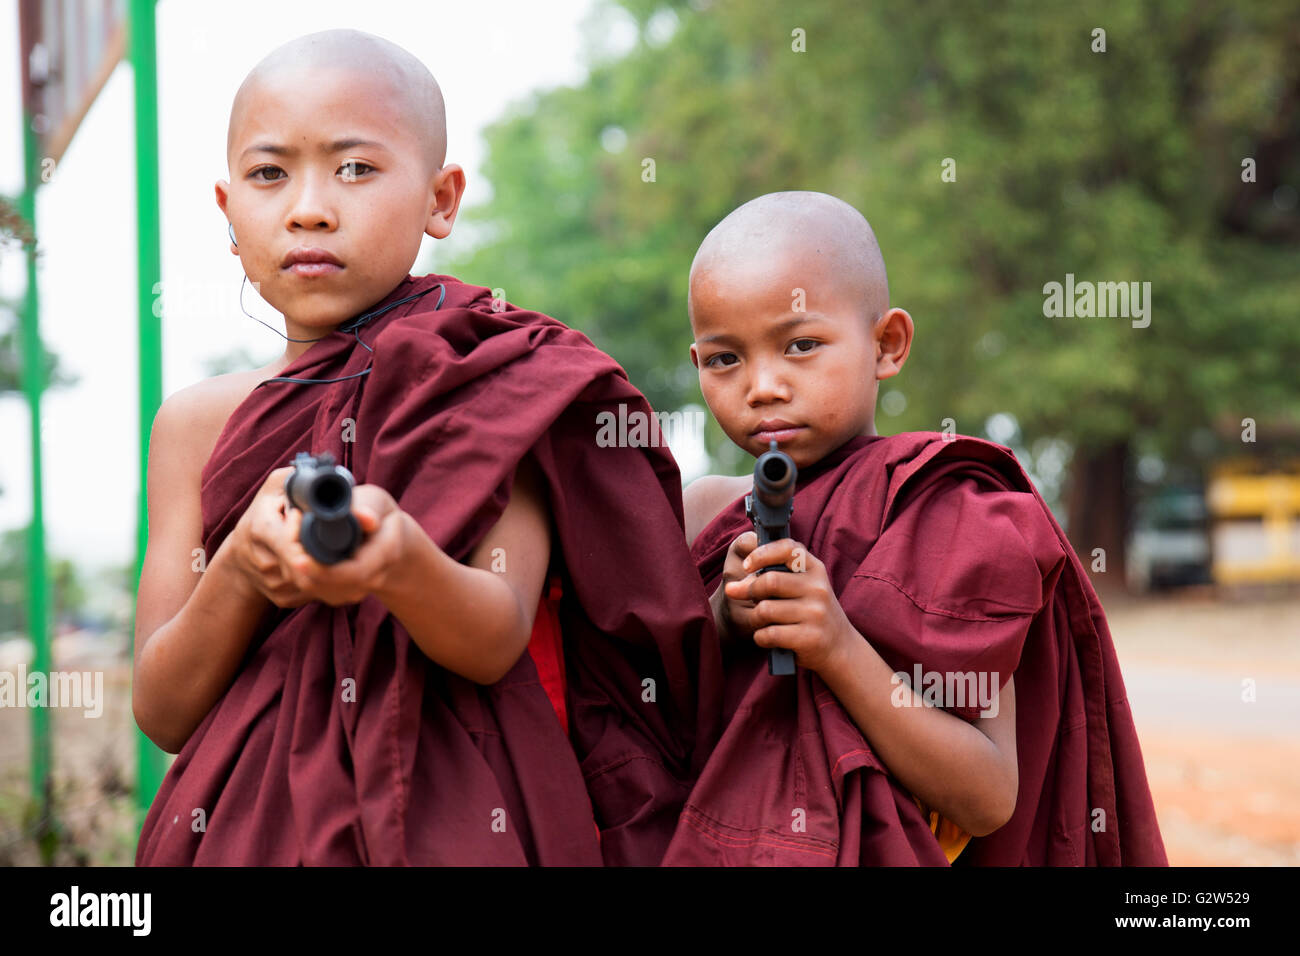 Two young novice monks with toy weapons, Kakku, Shan State, Myanmar - Stock Image